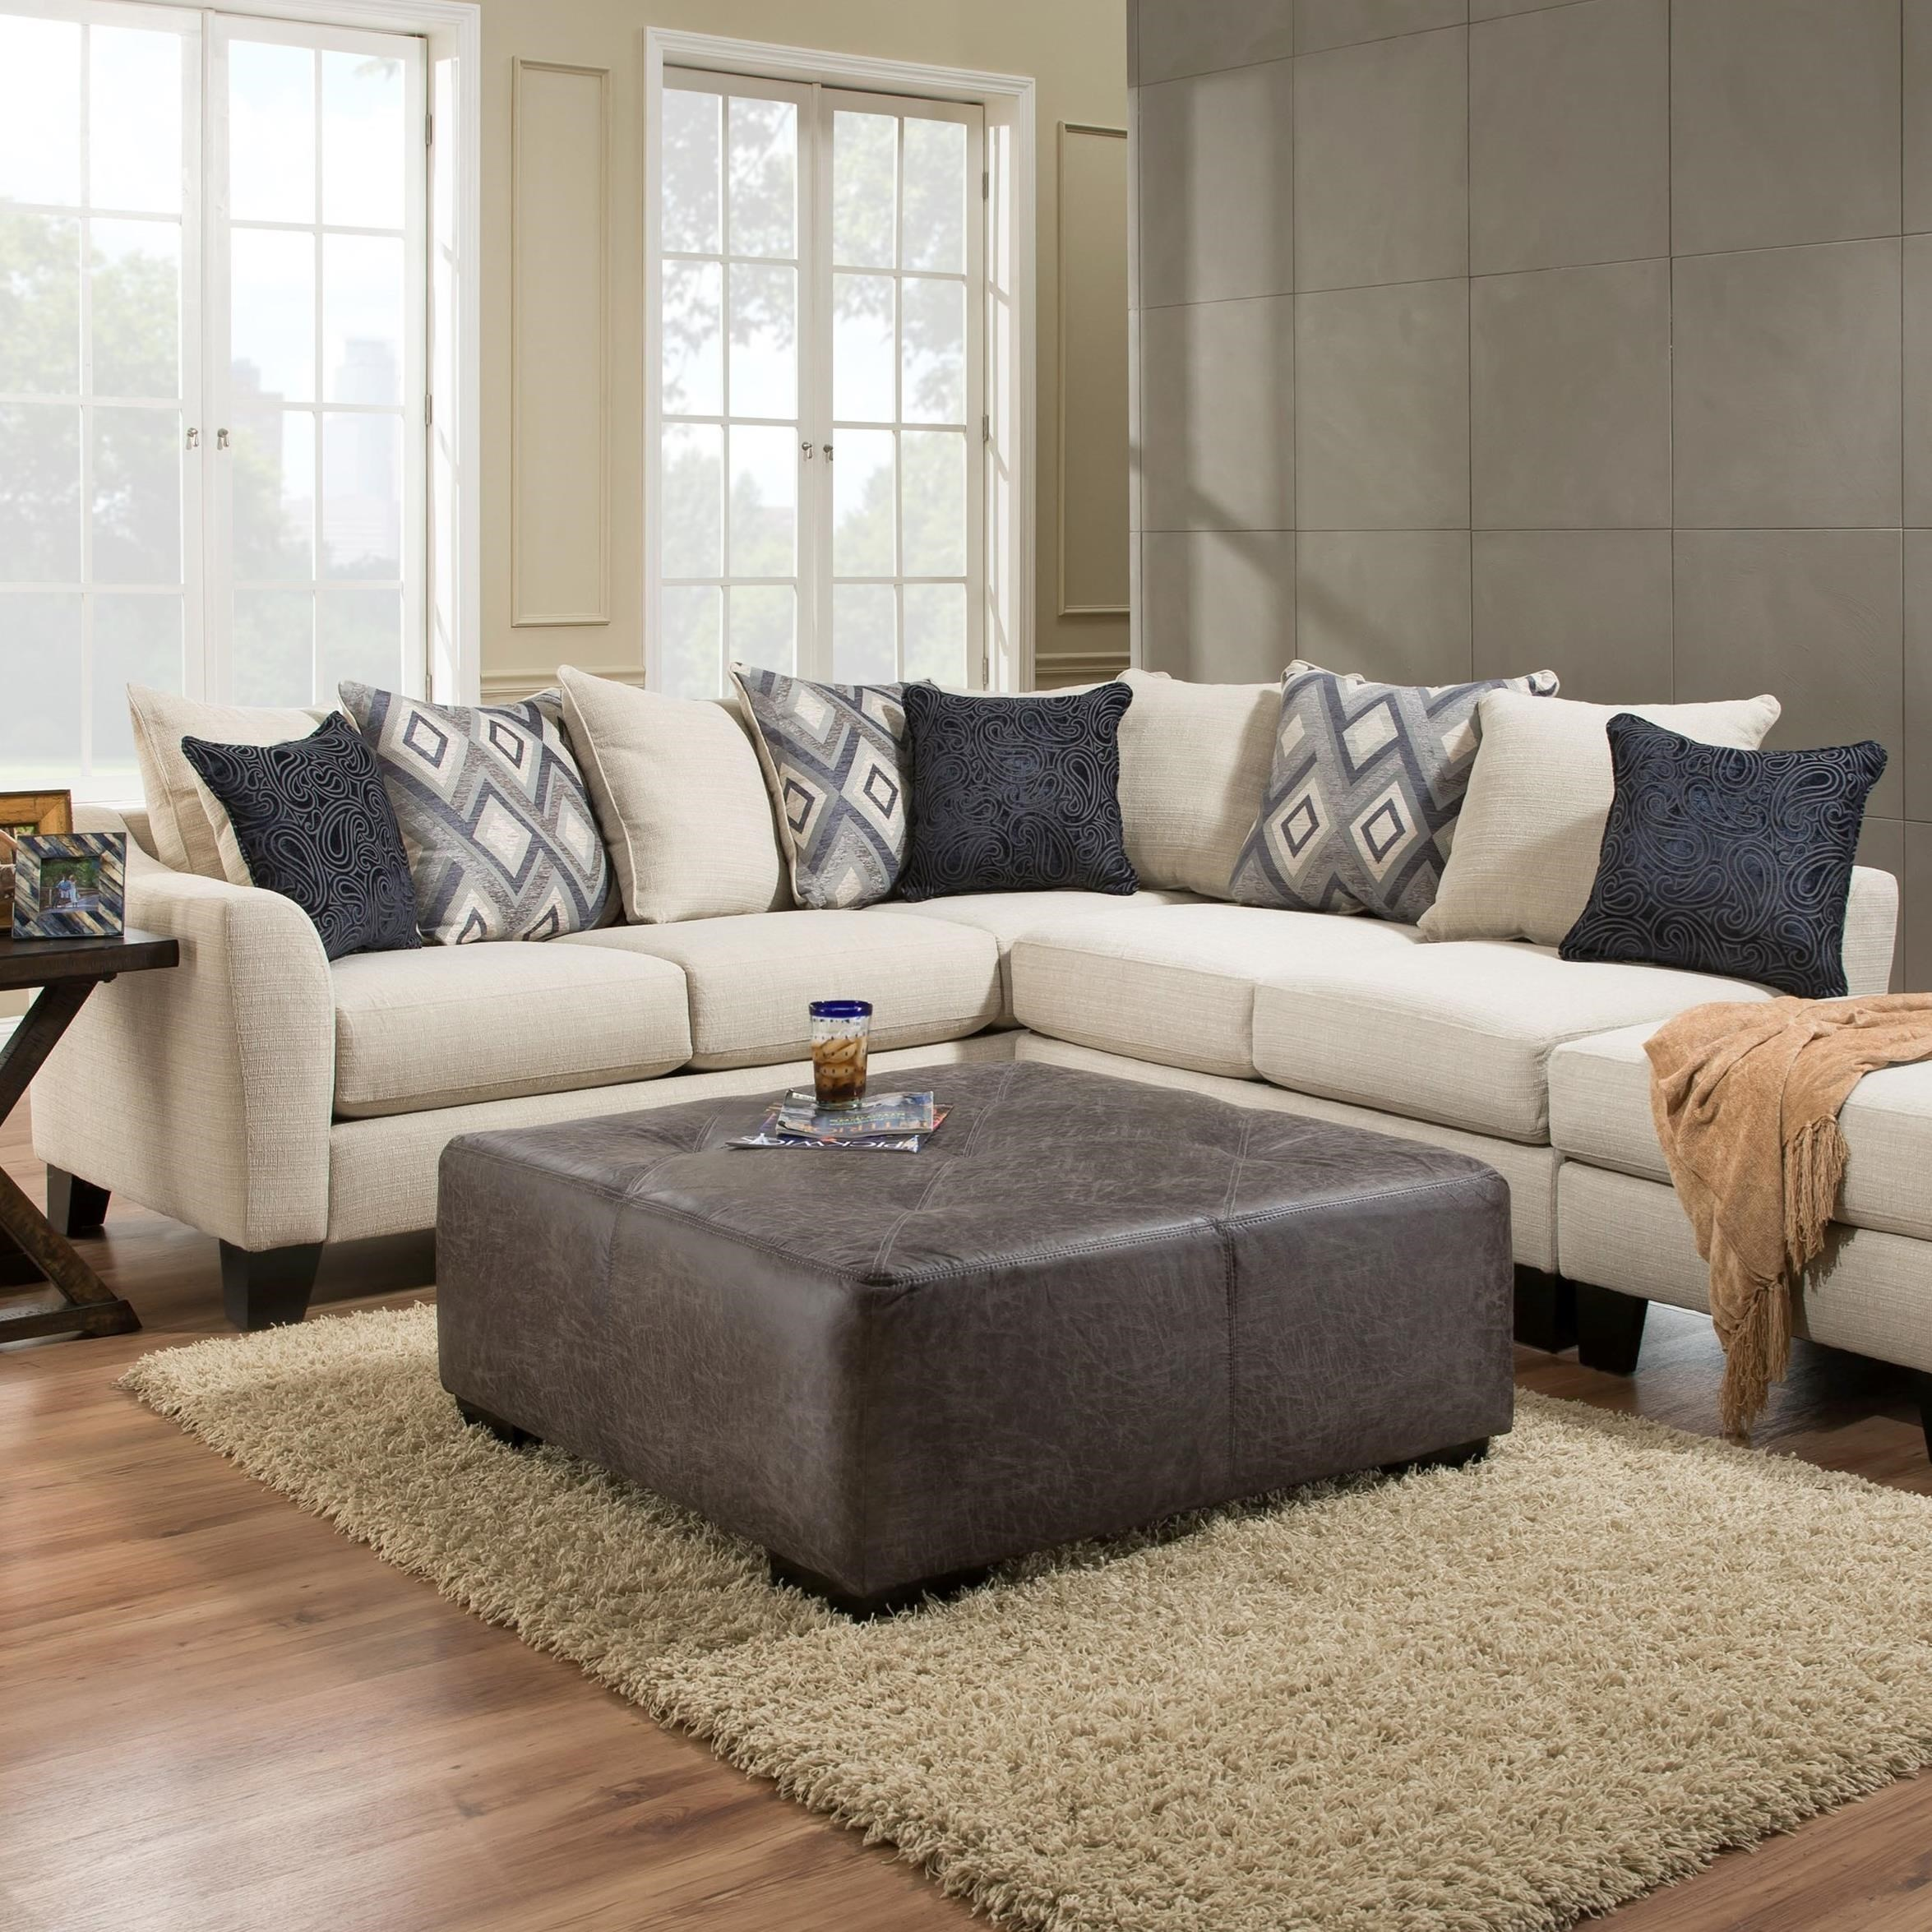 Albany R759 2 Piece Sectional Sofa In Dynasty Cream Fabric